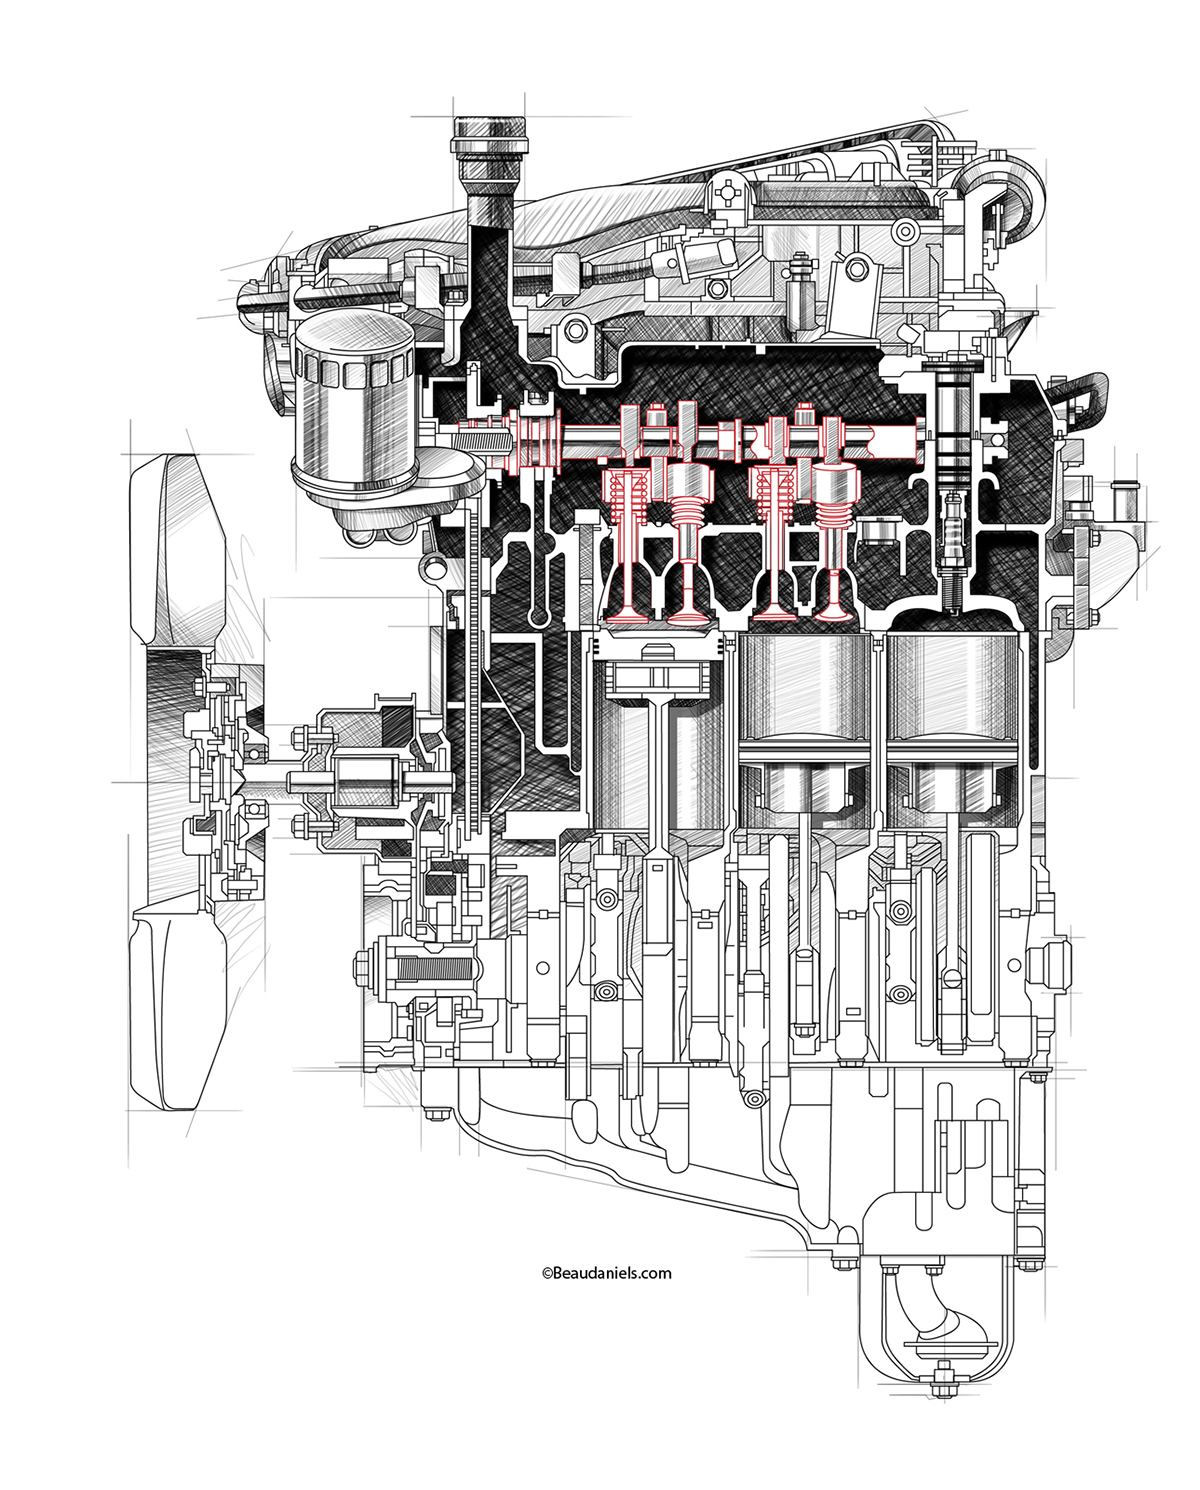 Cutaway Automotive Engines On Behance